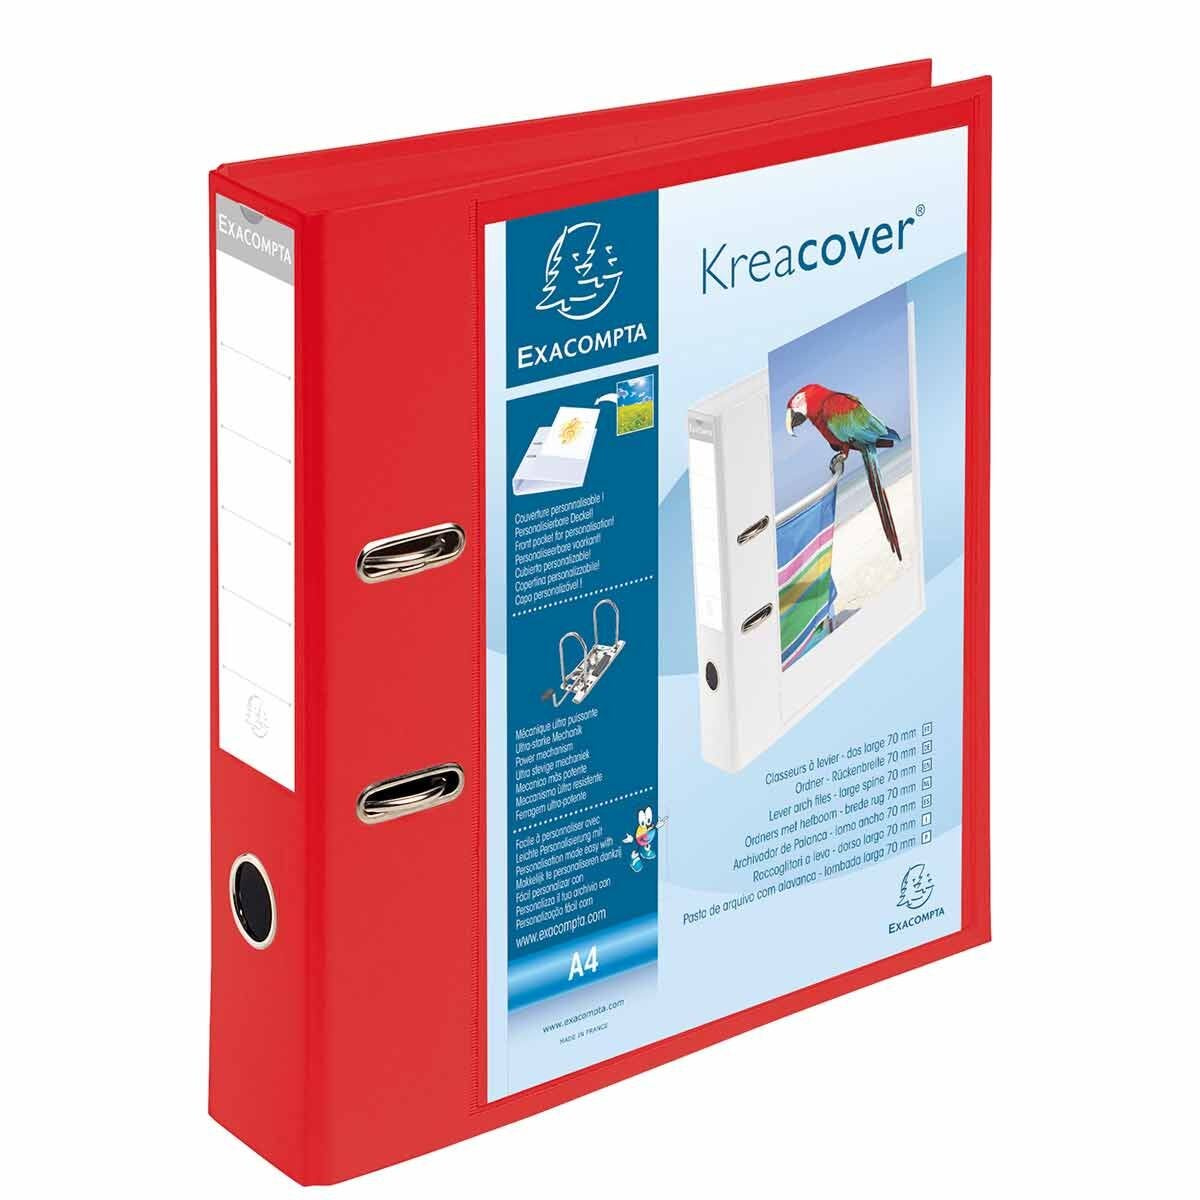 Exacompta Kreacover PremTouch Lever Arch File A4 70mm Pack of 10 Red